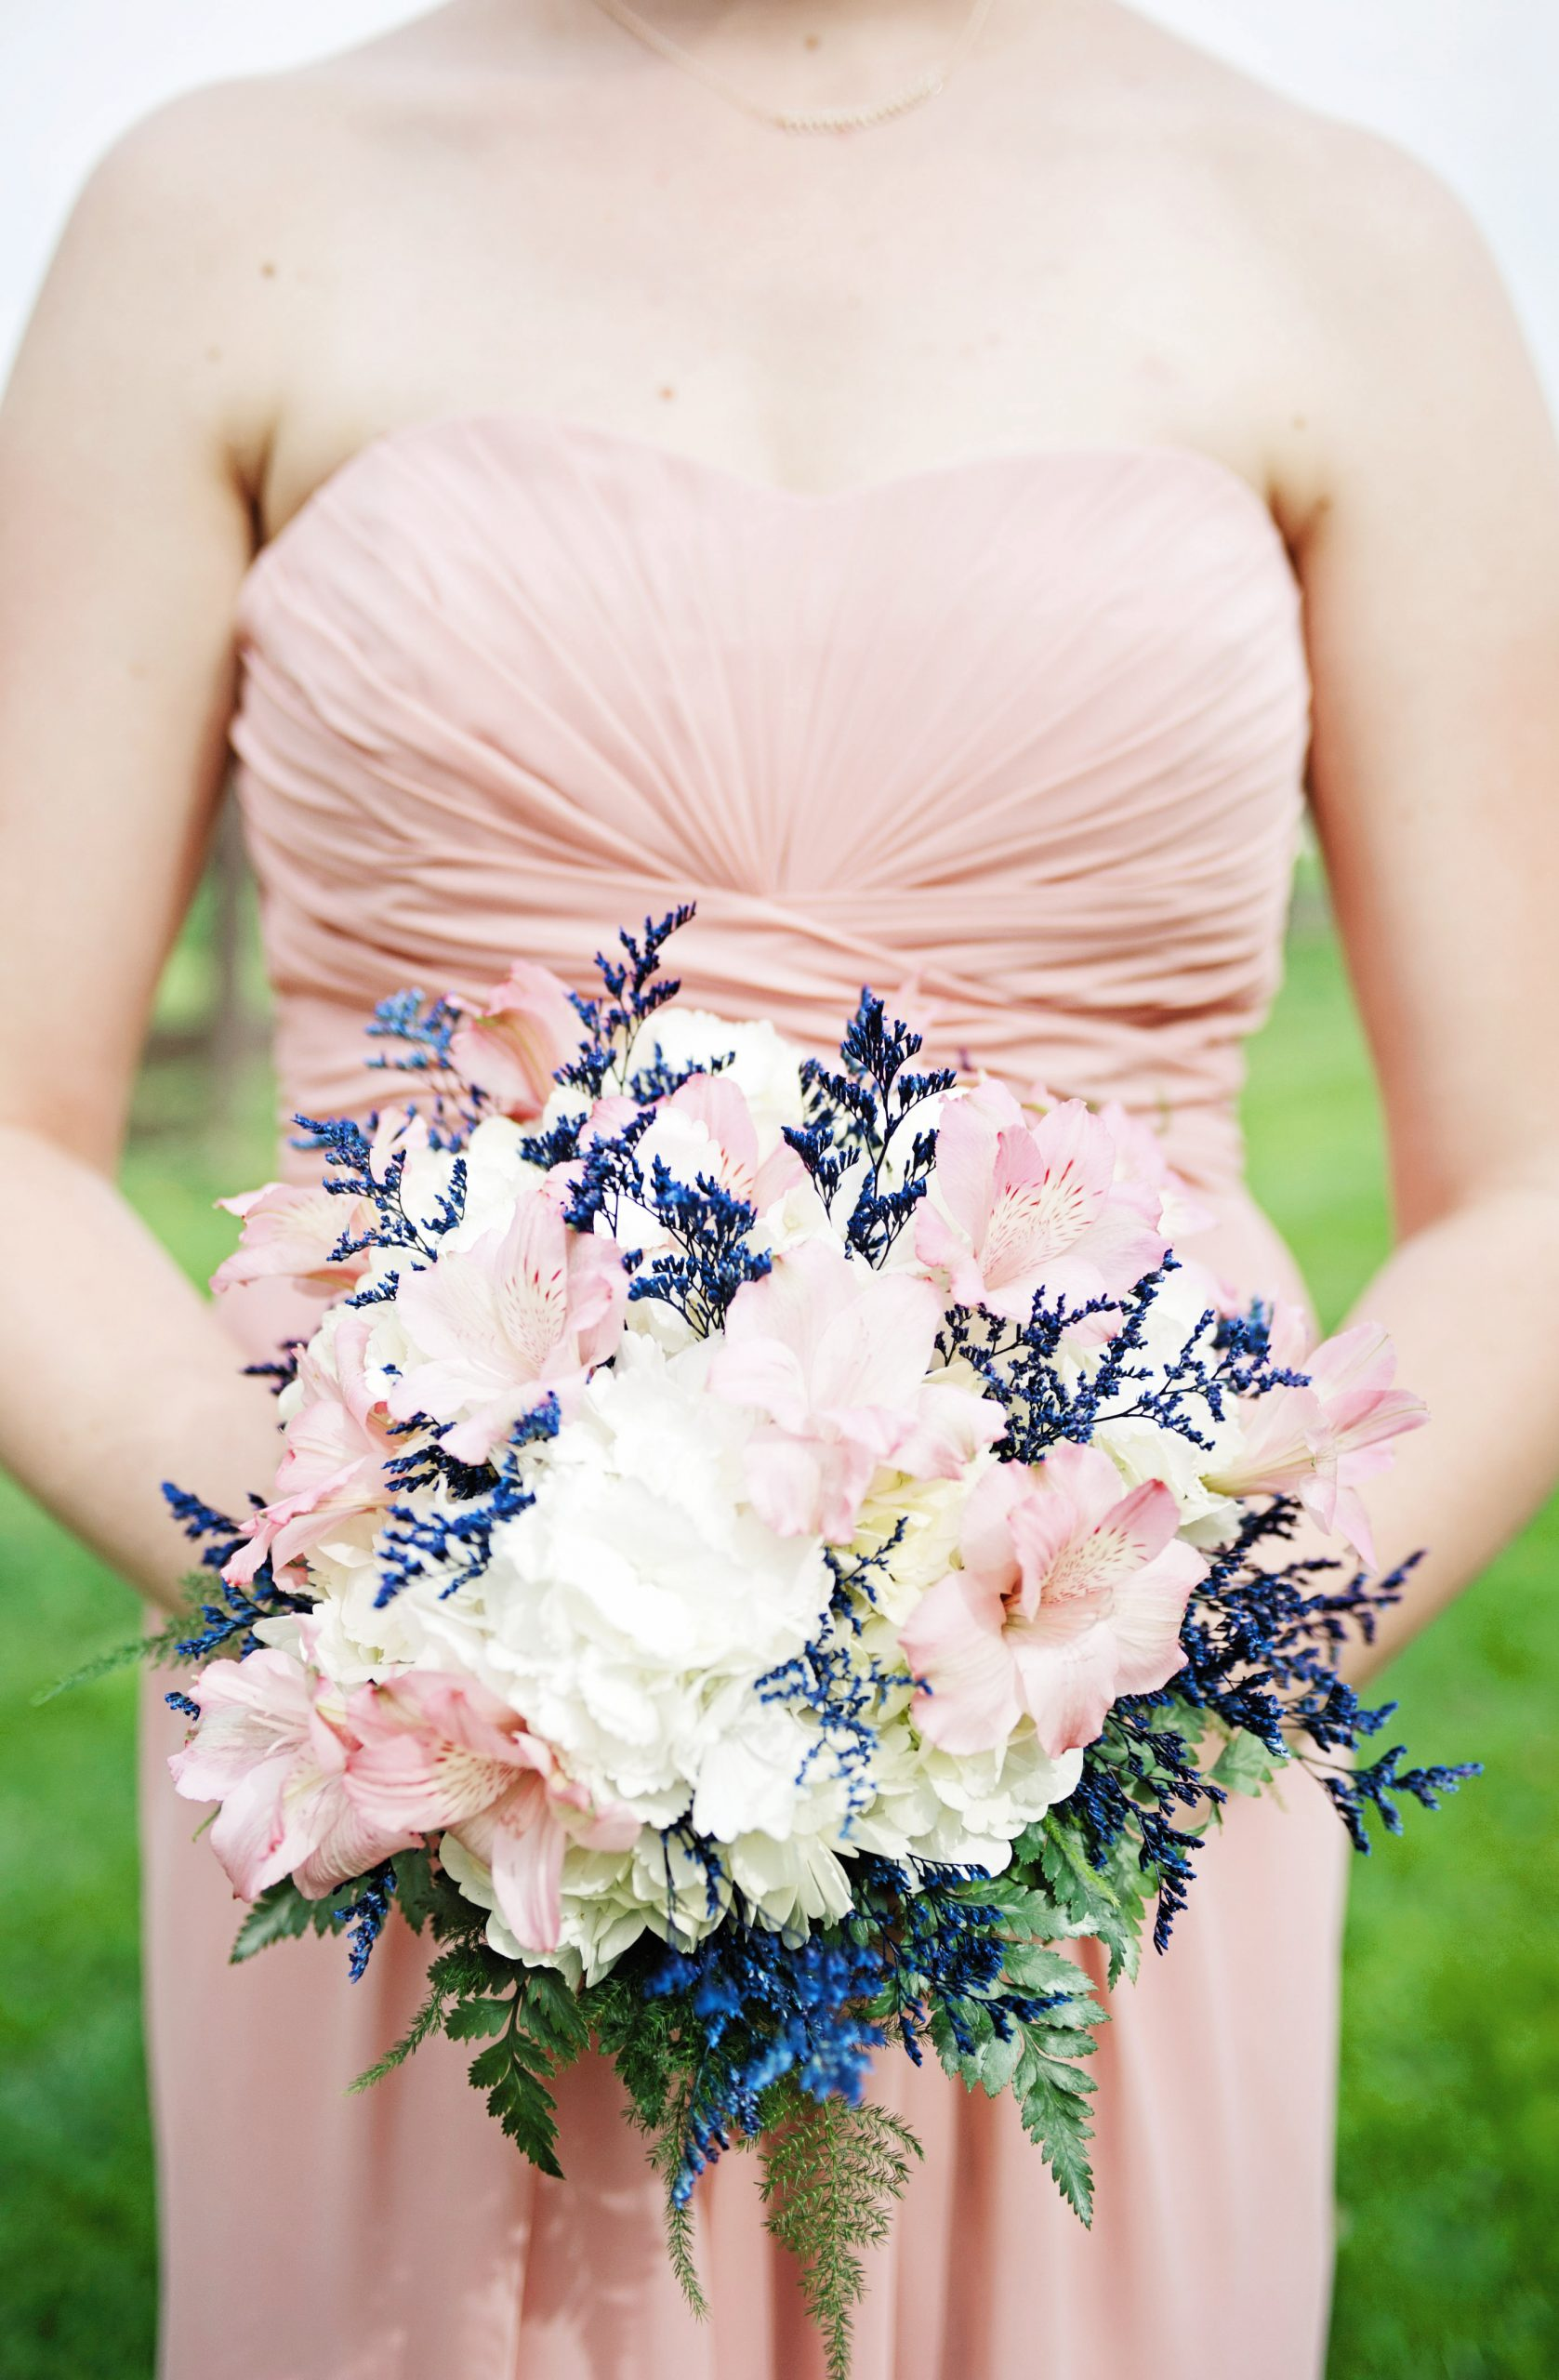 Lillys with a pop of color helped to brighten up this Spring Lakeview Farms wedding. Shot by Lovefsuion Photography. Featured in Dream Weddings.